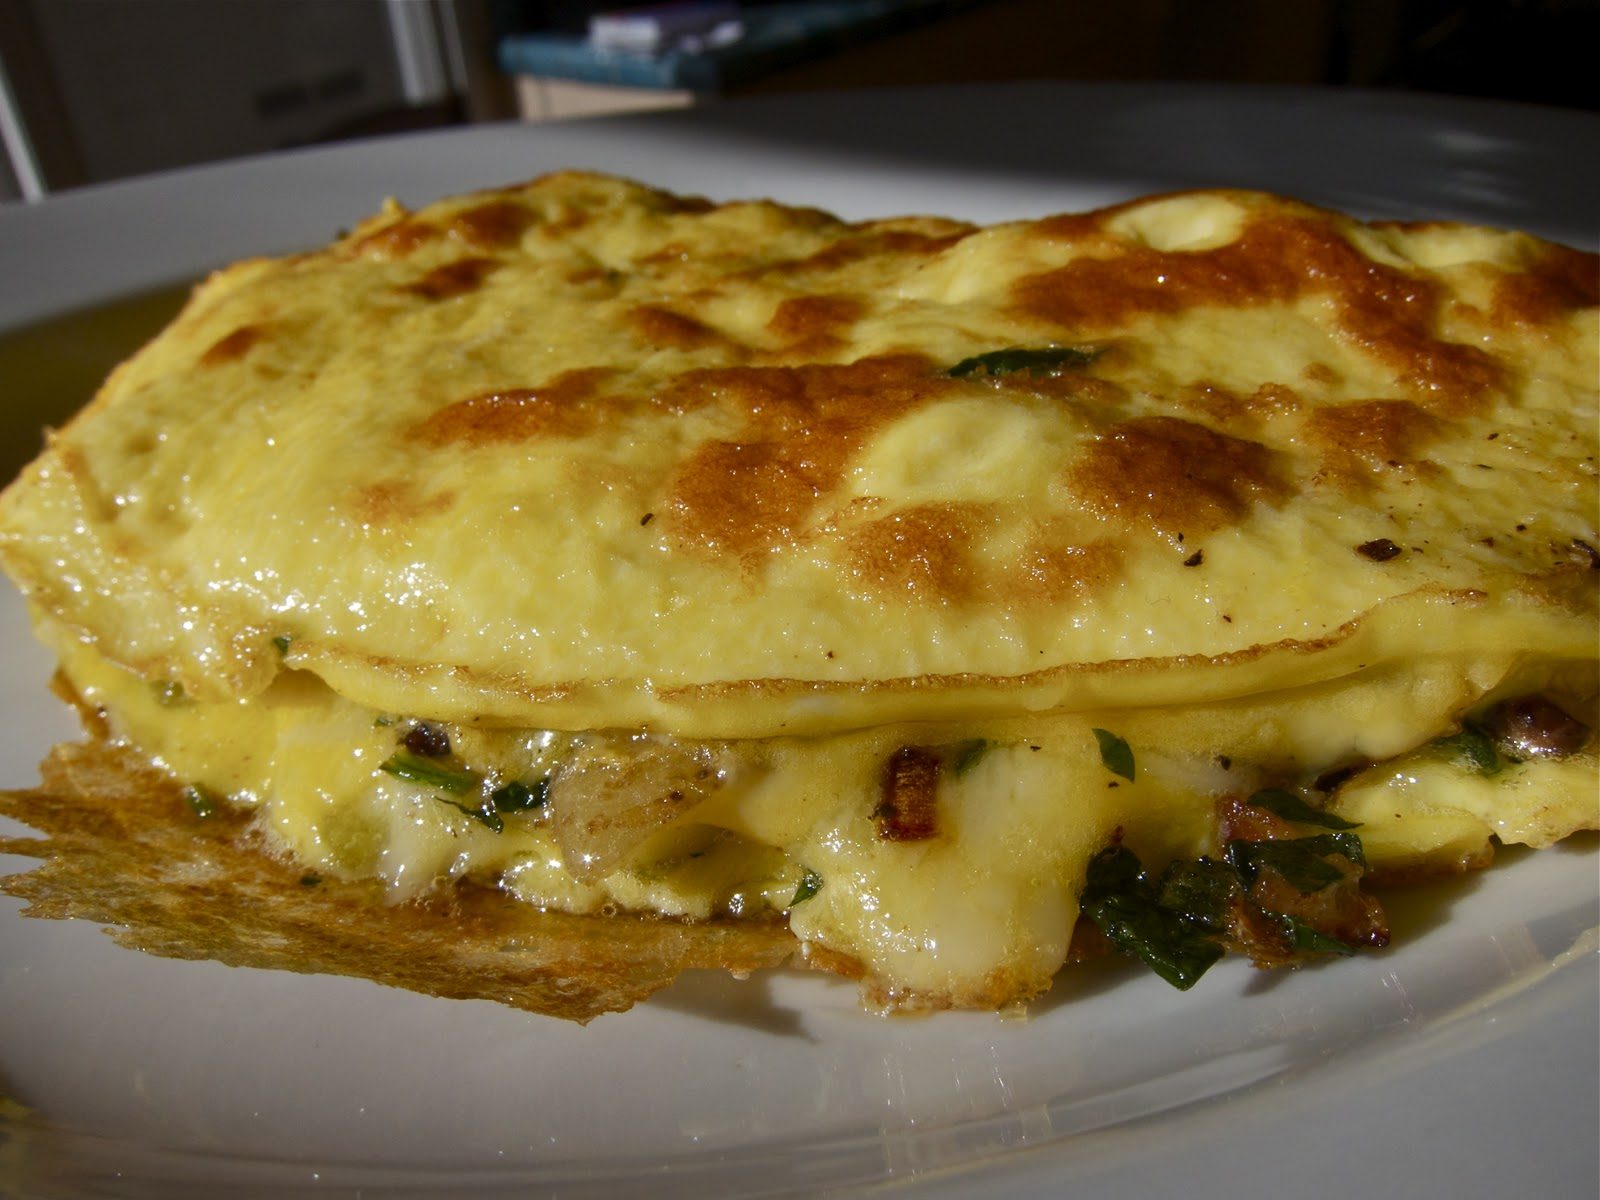 ... everything easier and a nice crust forms on the outside of the omelet